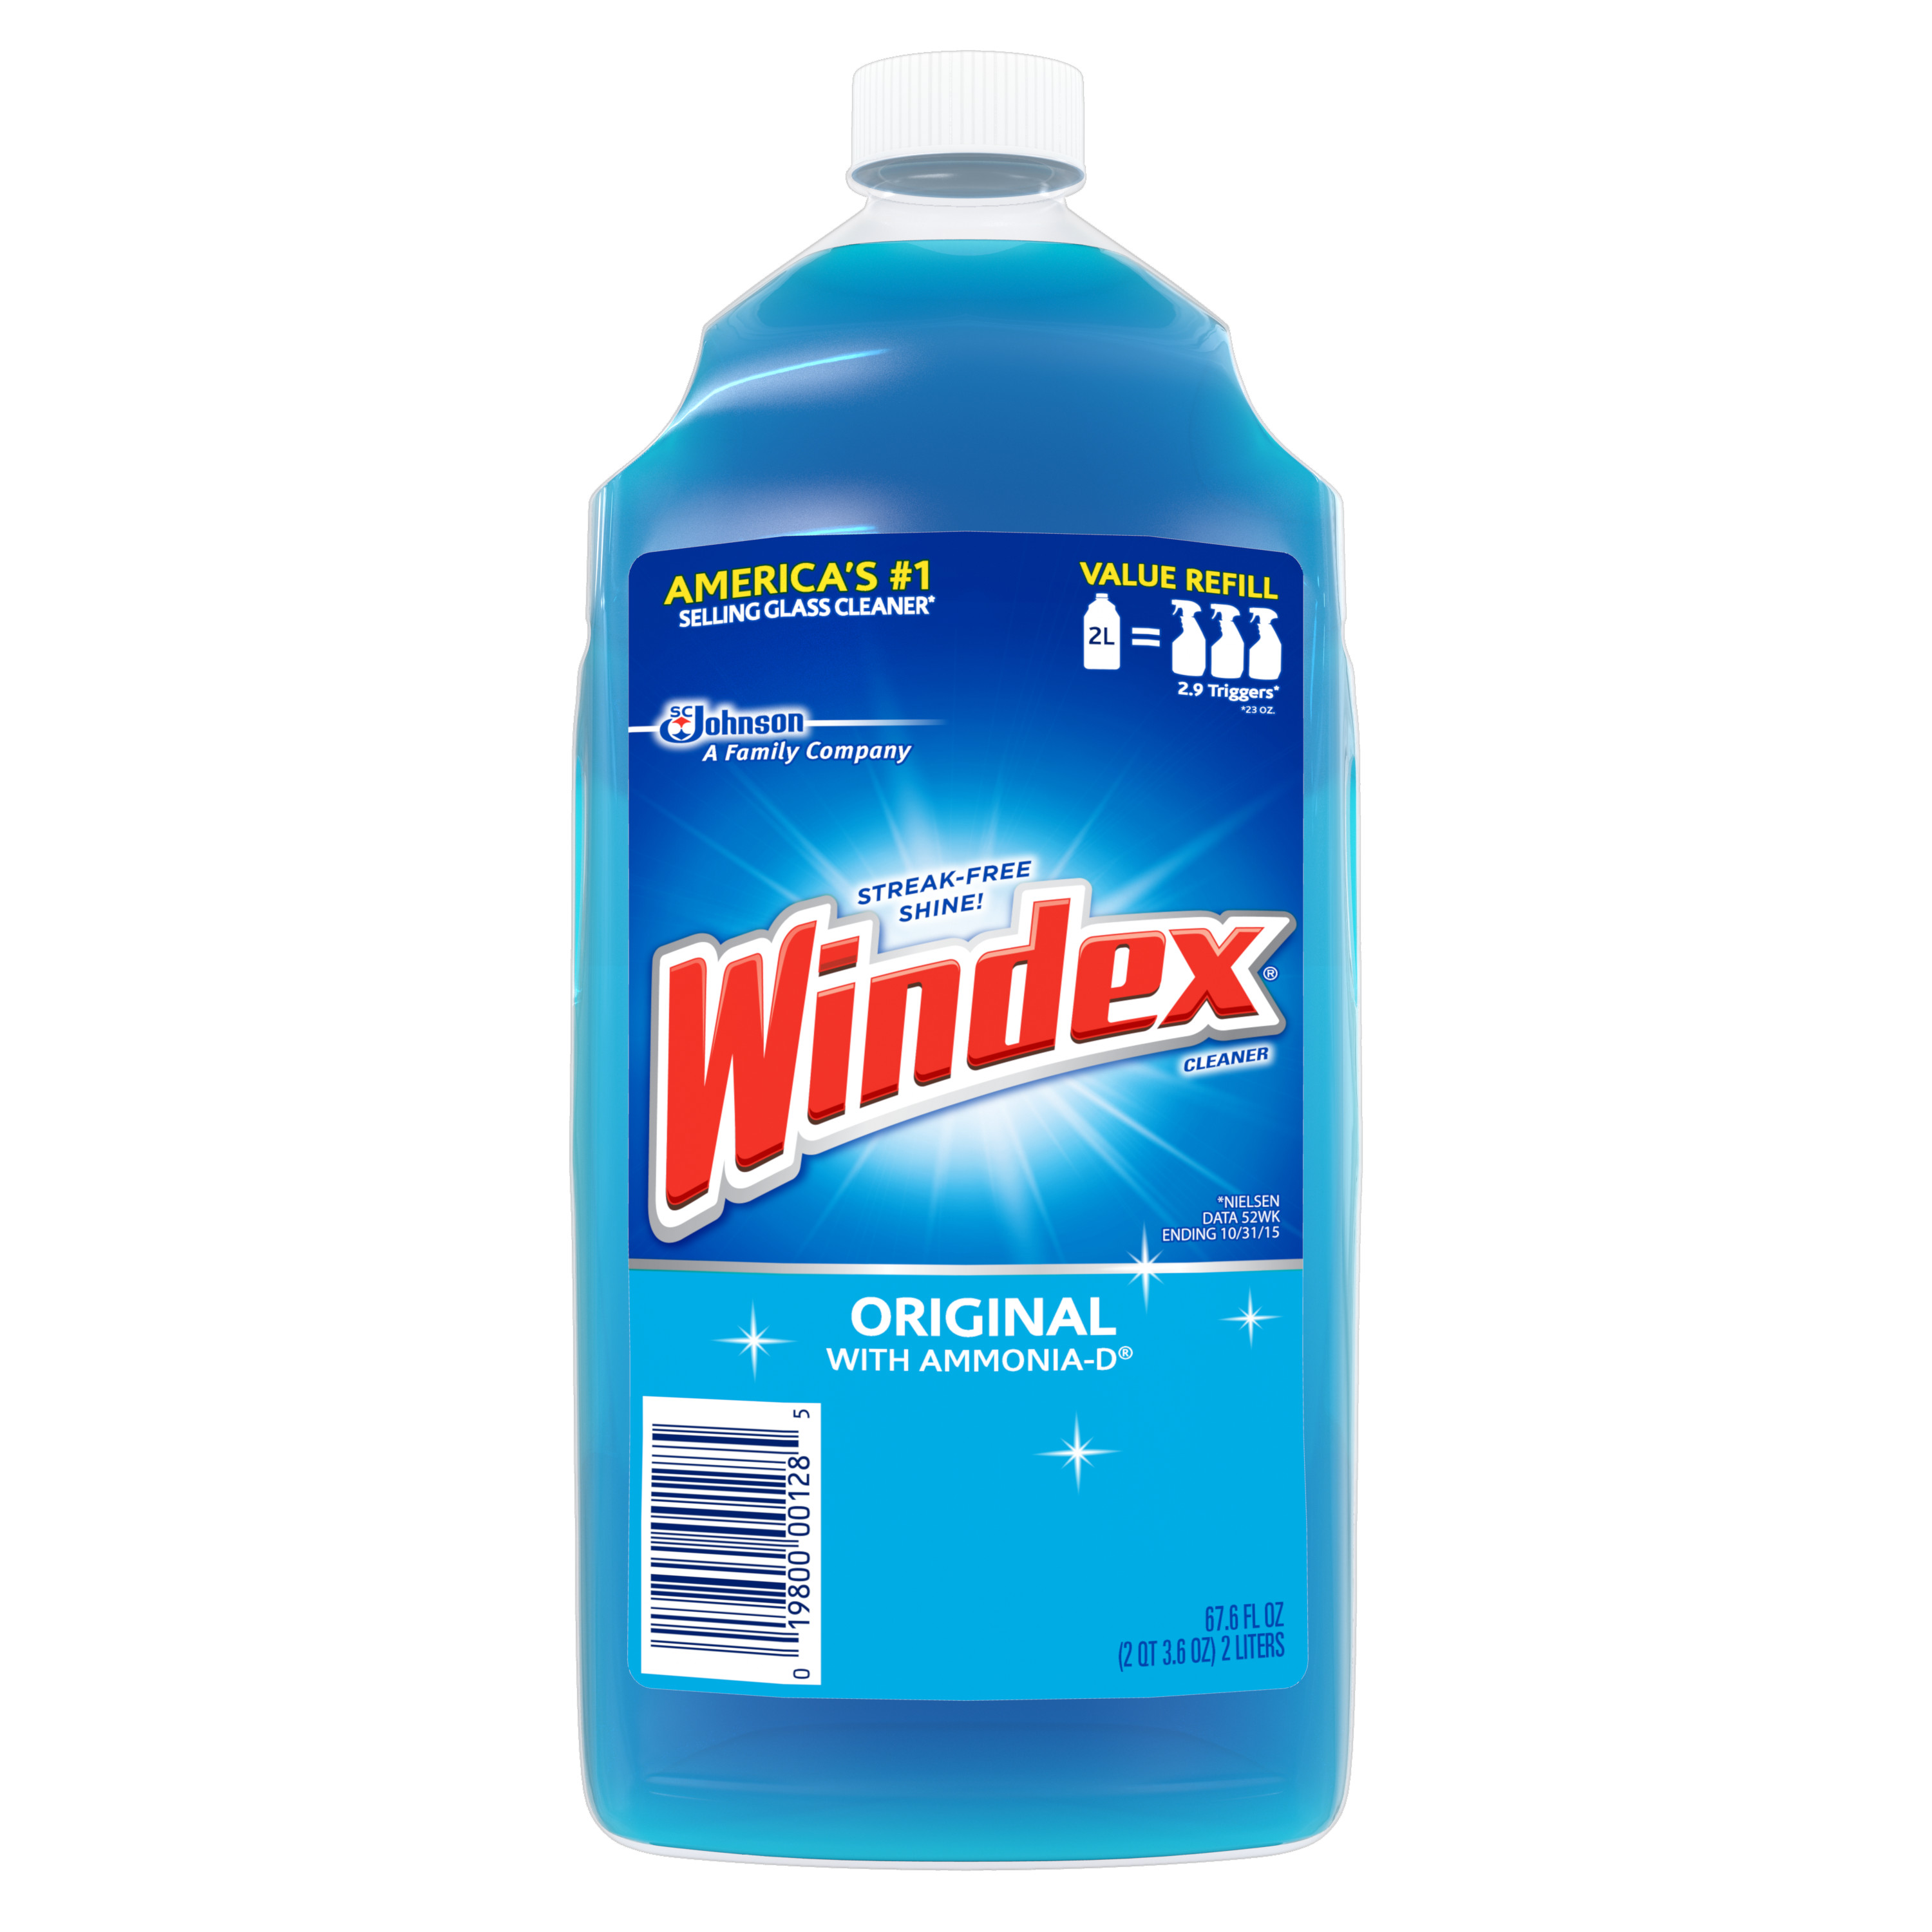 Windex Original Glass Cleaner Refill 67.6 Ounces (2 Liter)